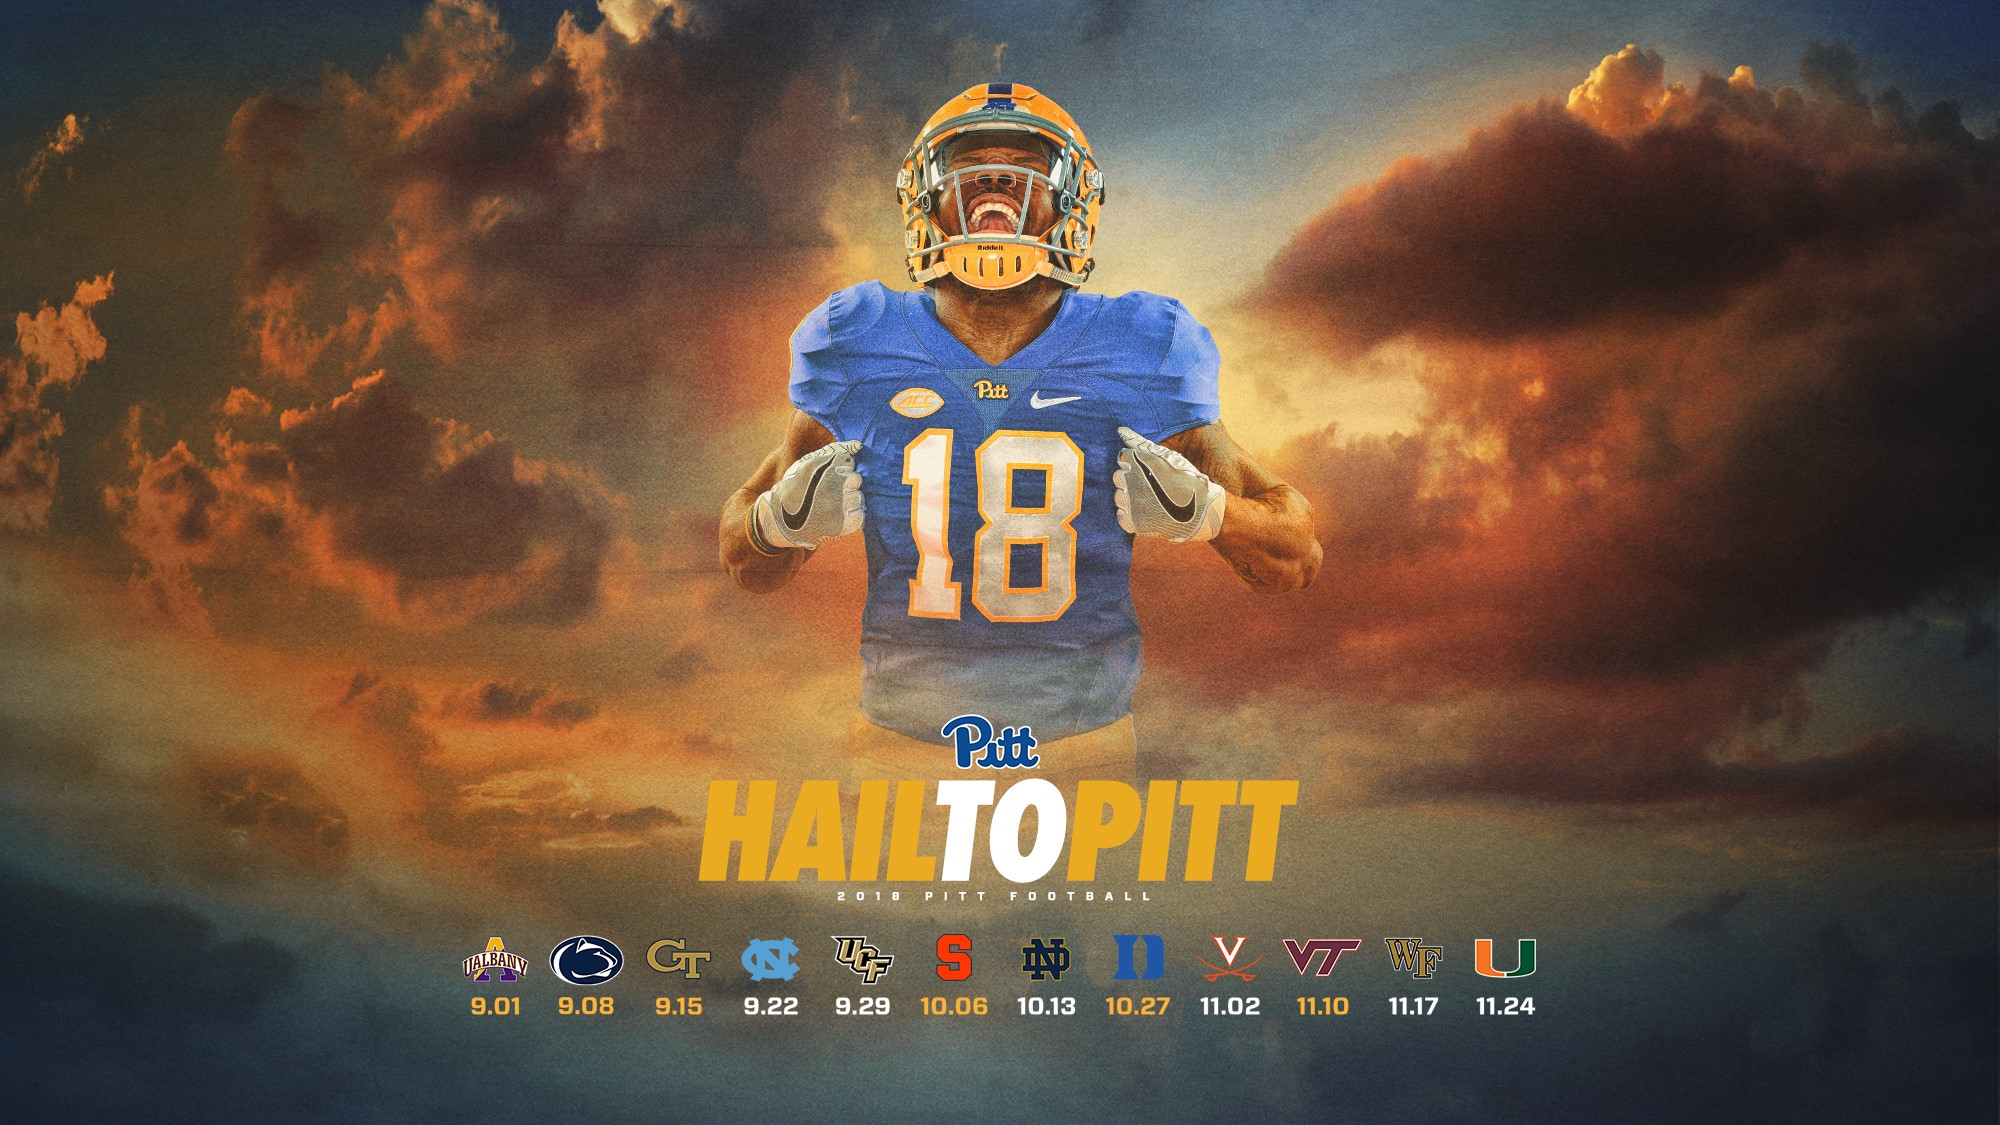 2019 Pitt Football Schedule Pitt Announces 2018 Football Schedule   Pitt Panthers #H2P